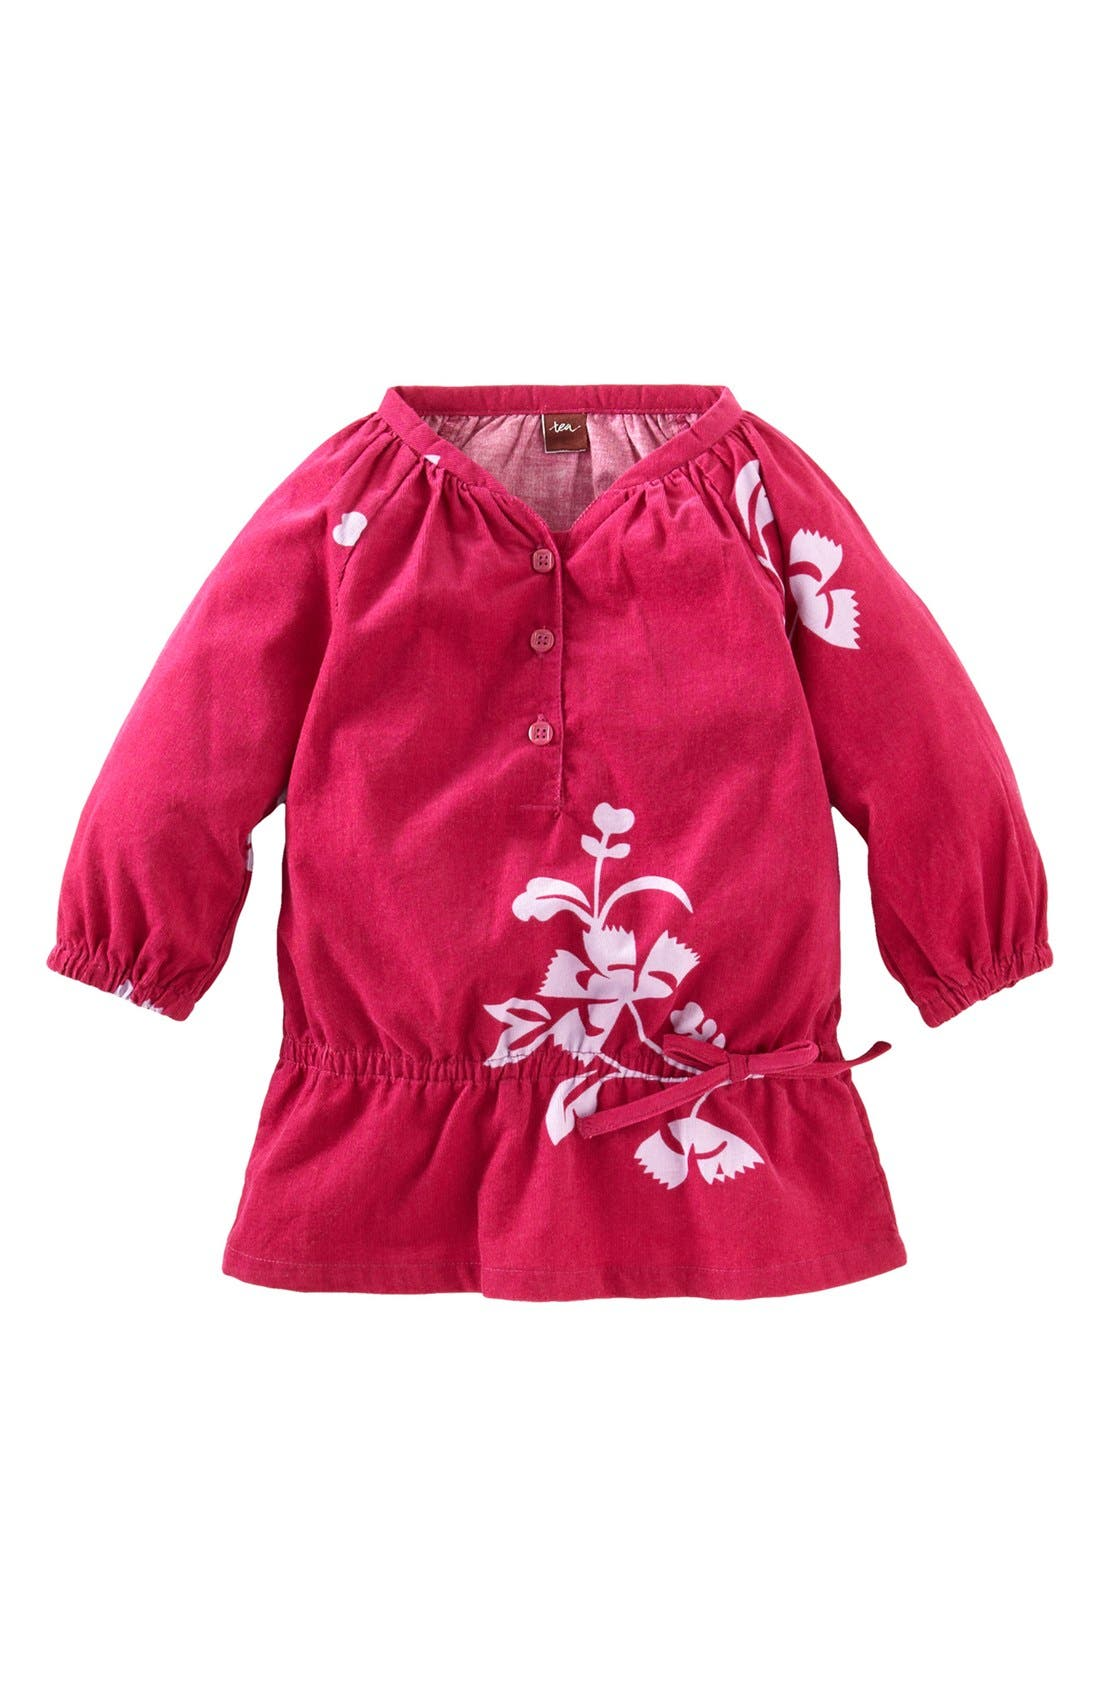 Alternate Image 1 Selected - Tea Collection 'Floral Cozy' Corduroy Top (Little Girls & Big Girls)